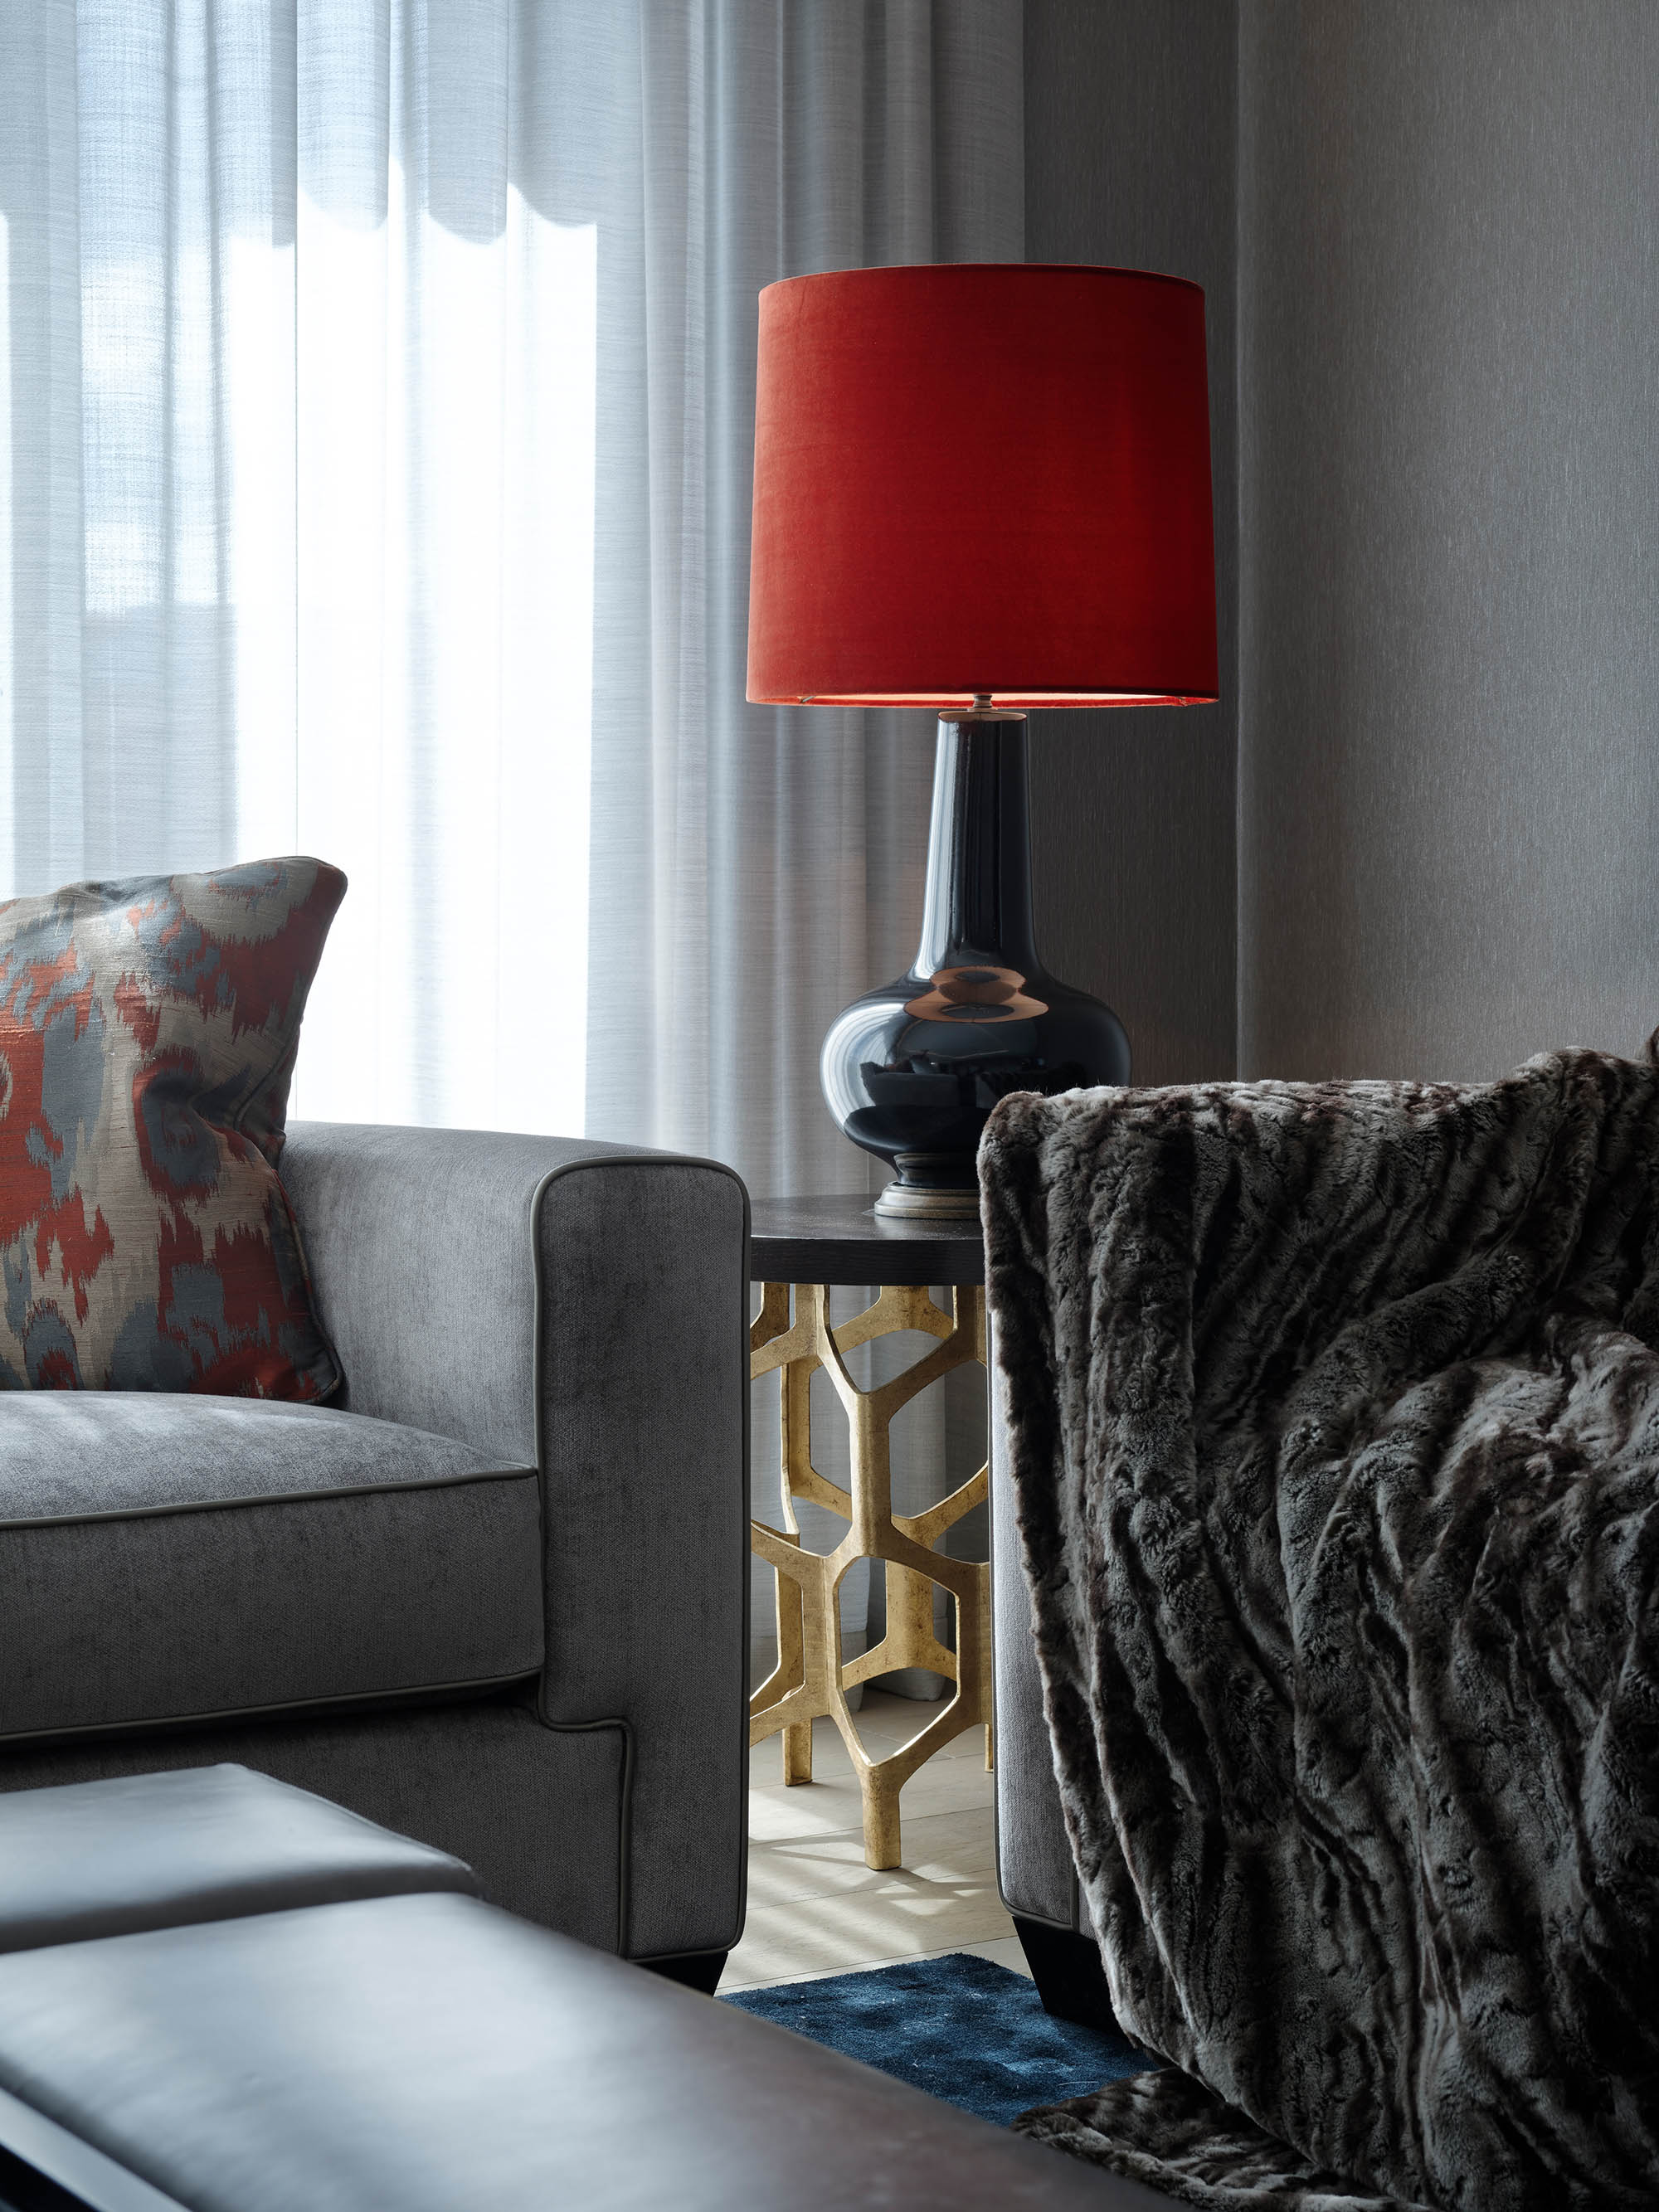 Luxury design details from the sitting room of the Chelsea penthouse renovation: sofas, cushion, lamp. side table and faux fur throw